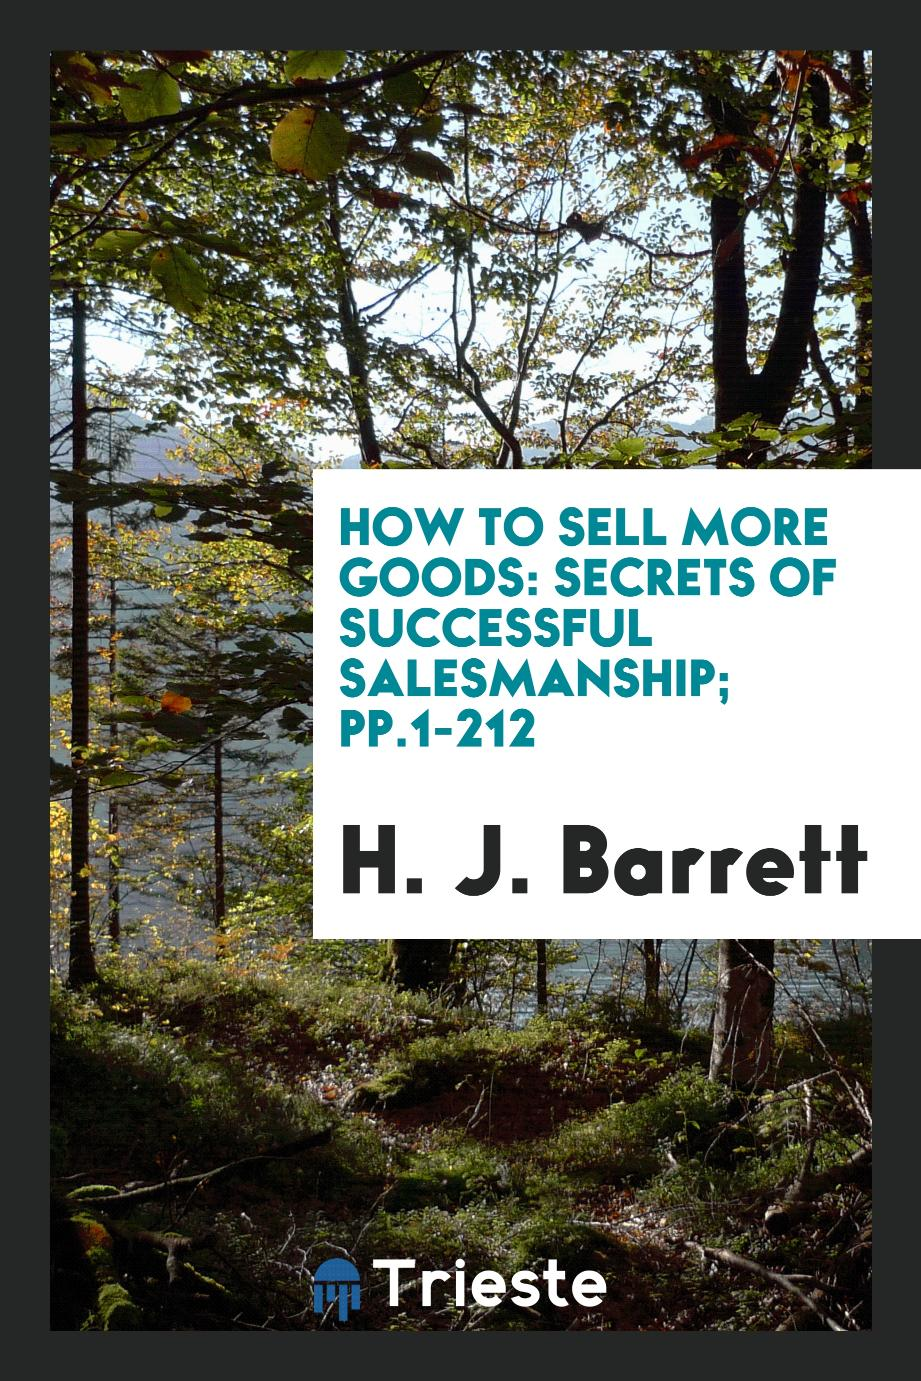 How to Sell More Goods: Secrets of Successful Salesmanship; pp.1-212